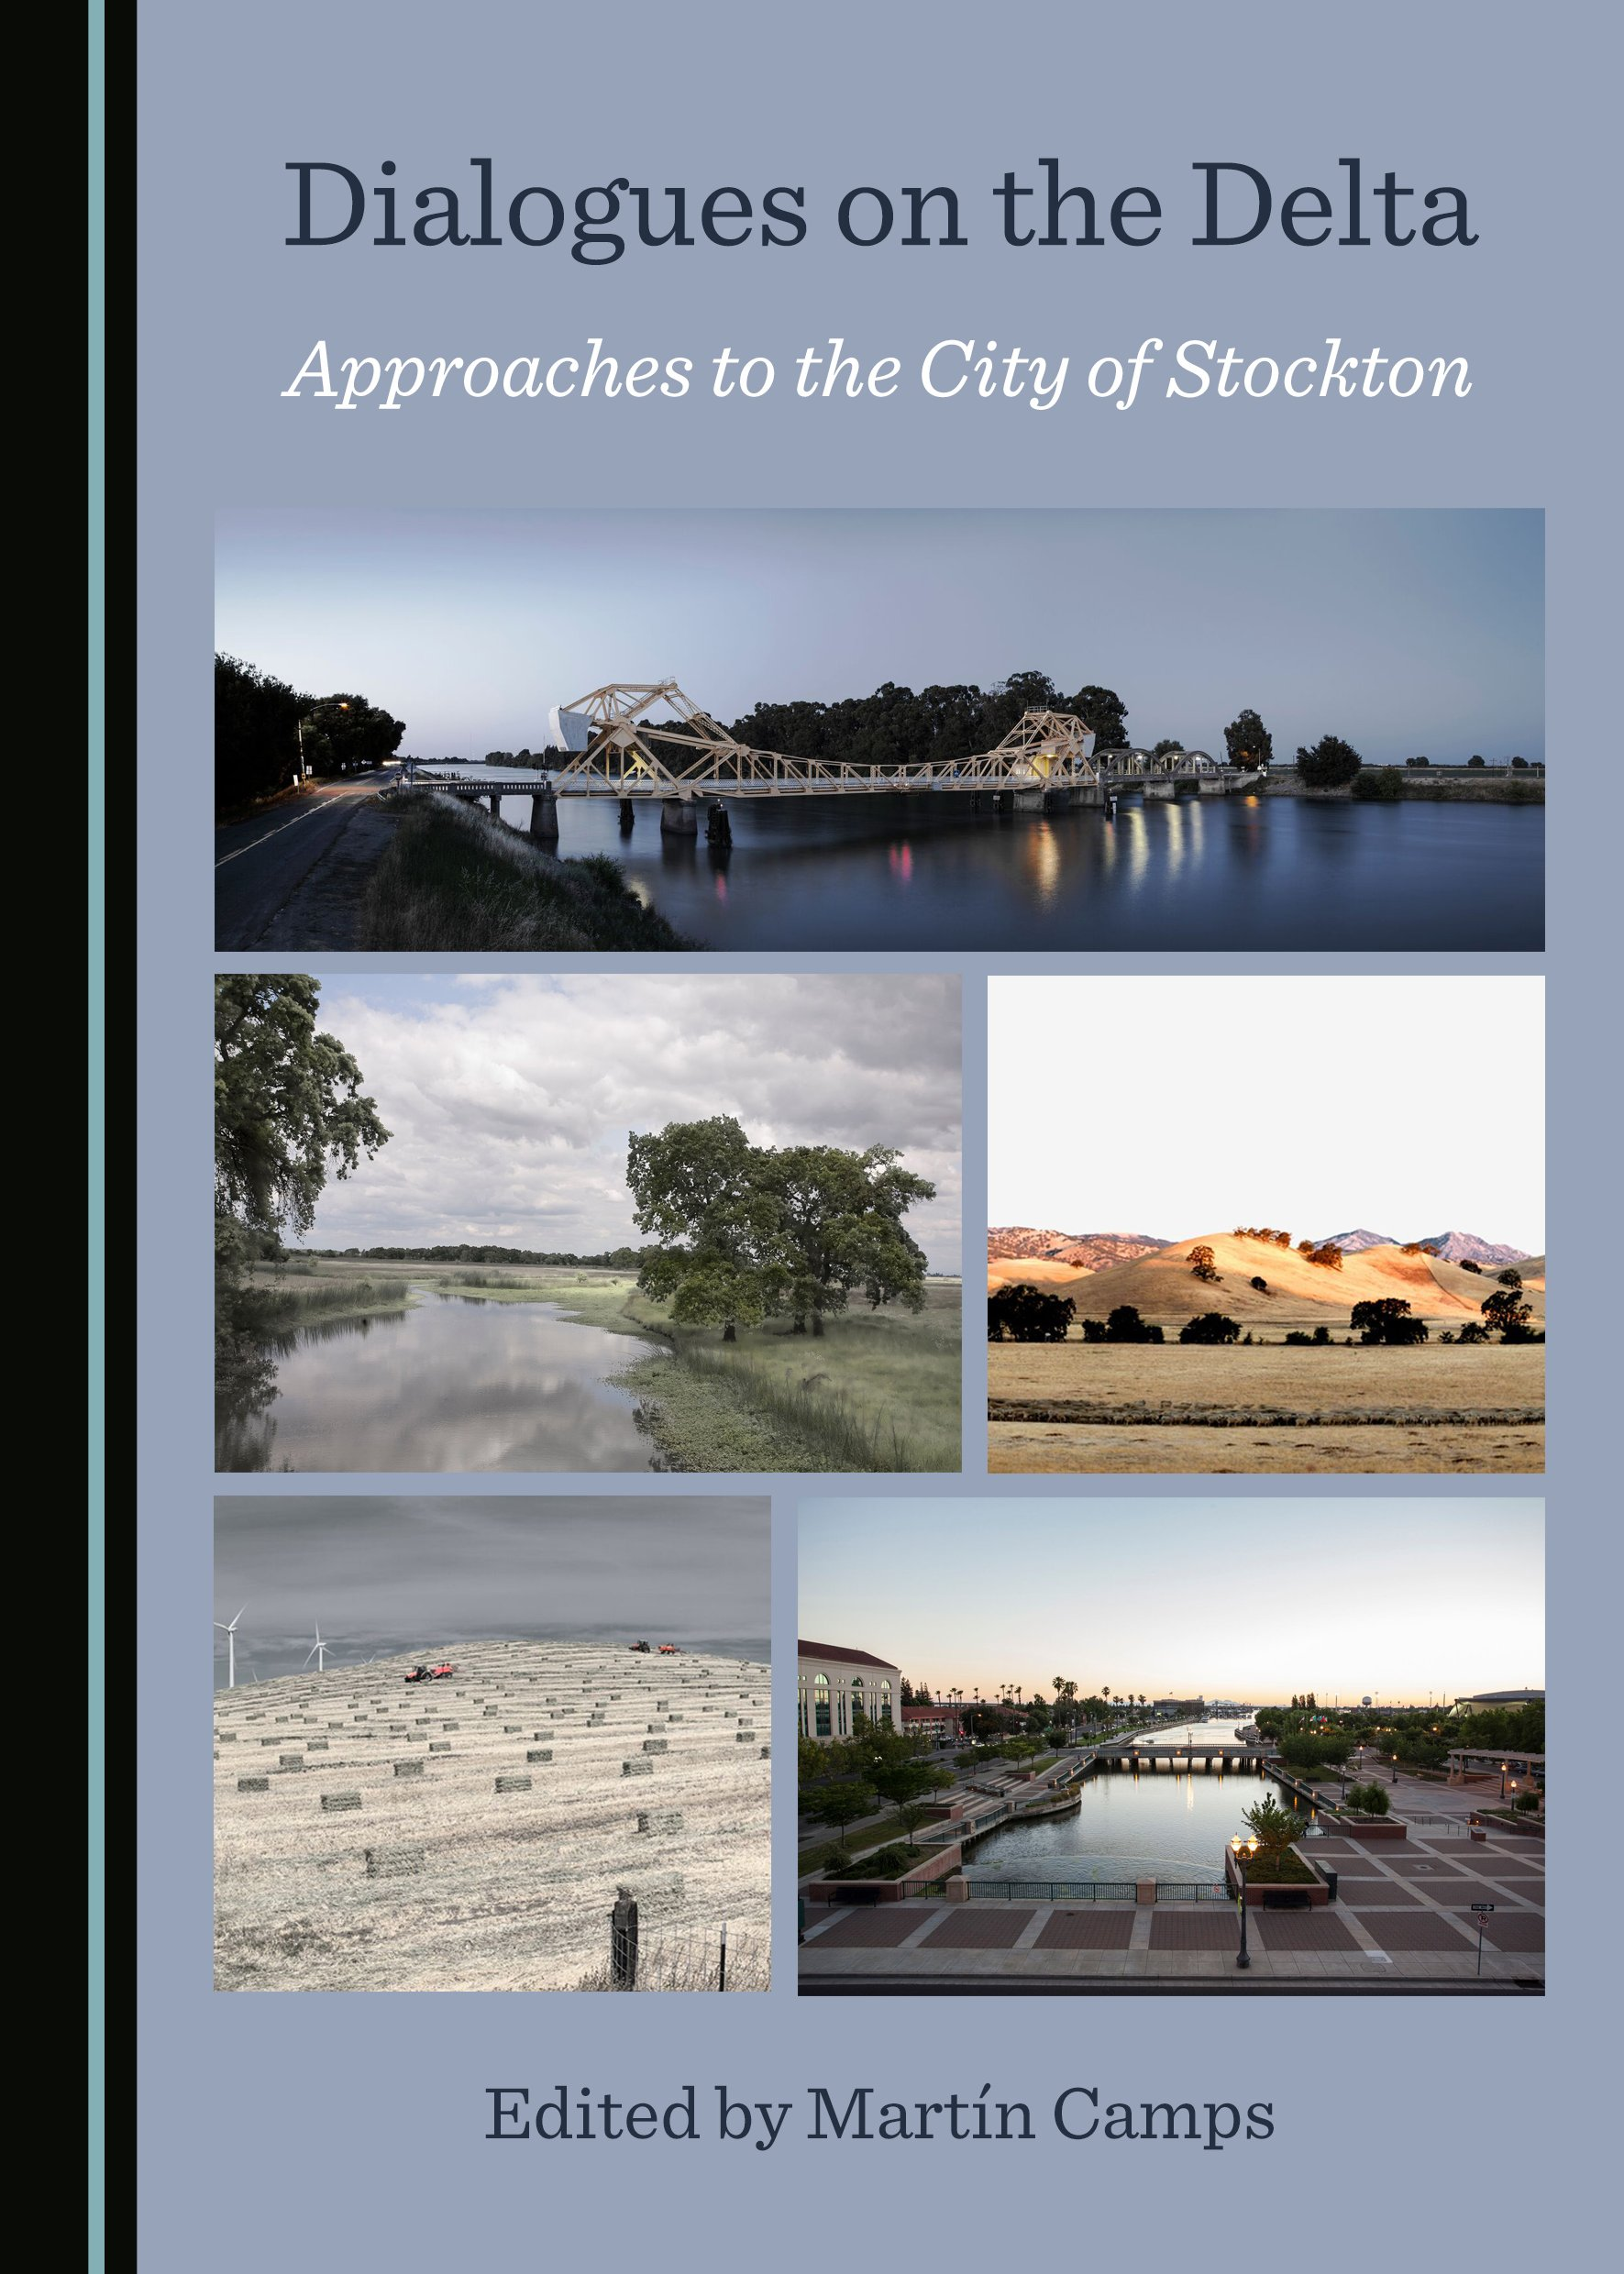 Dialogues on the Delta: Approaches to the City of Stockton